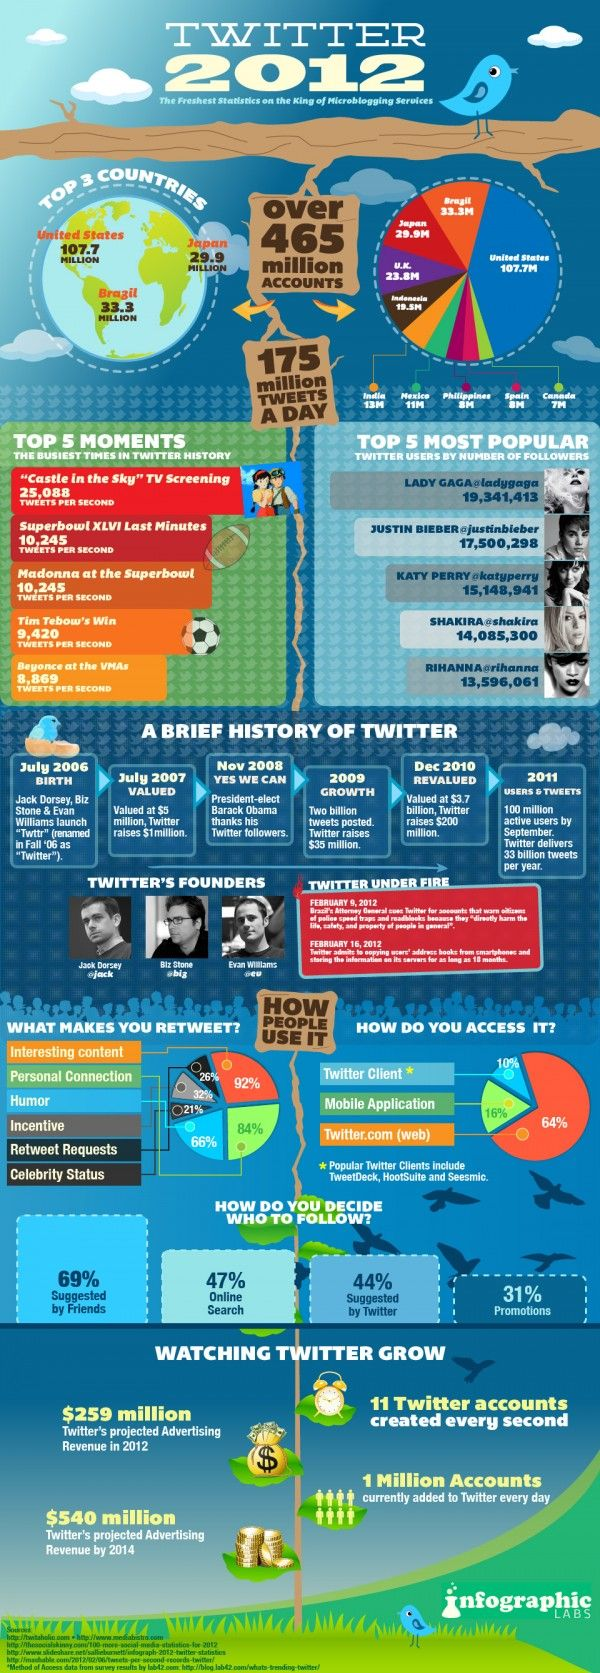 Statistiques Twitter 2012  www.business-on-line.fr